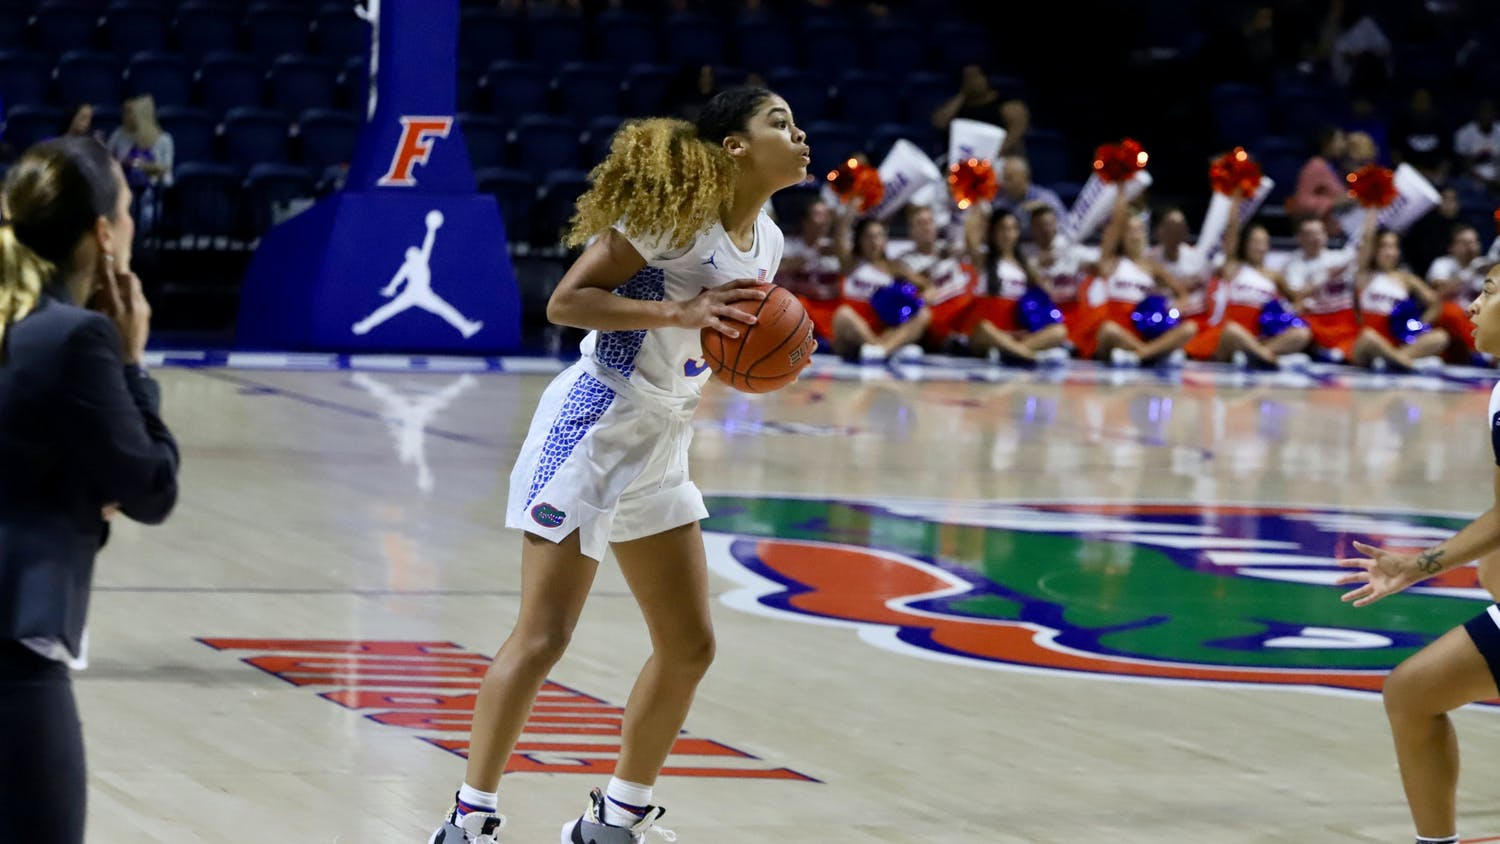 Gator guard Lavender Briggs facing Longwood University in November 2019.